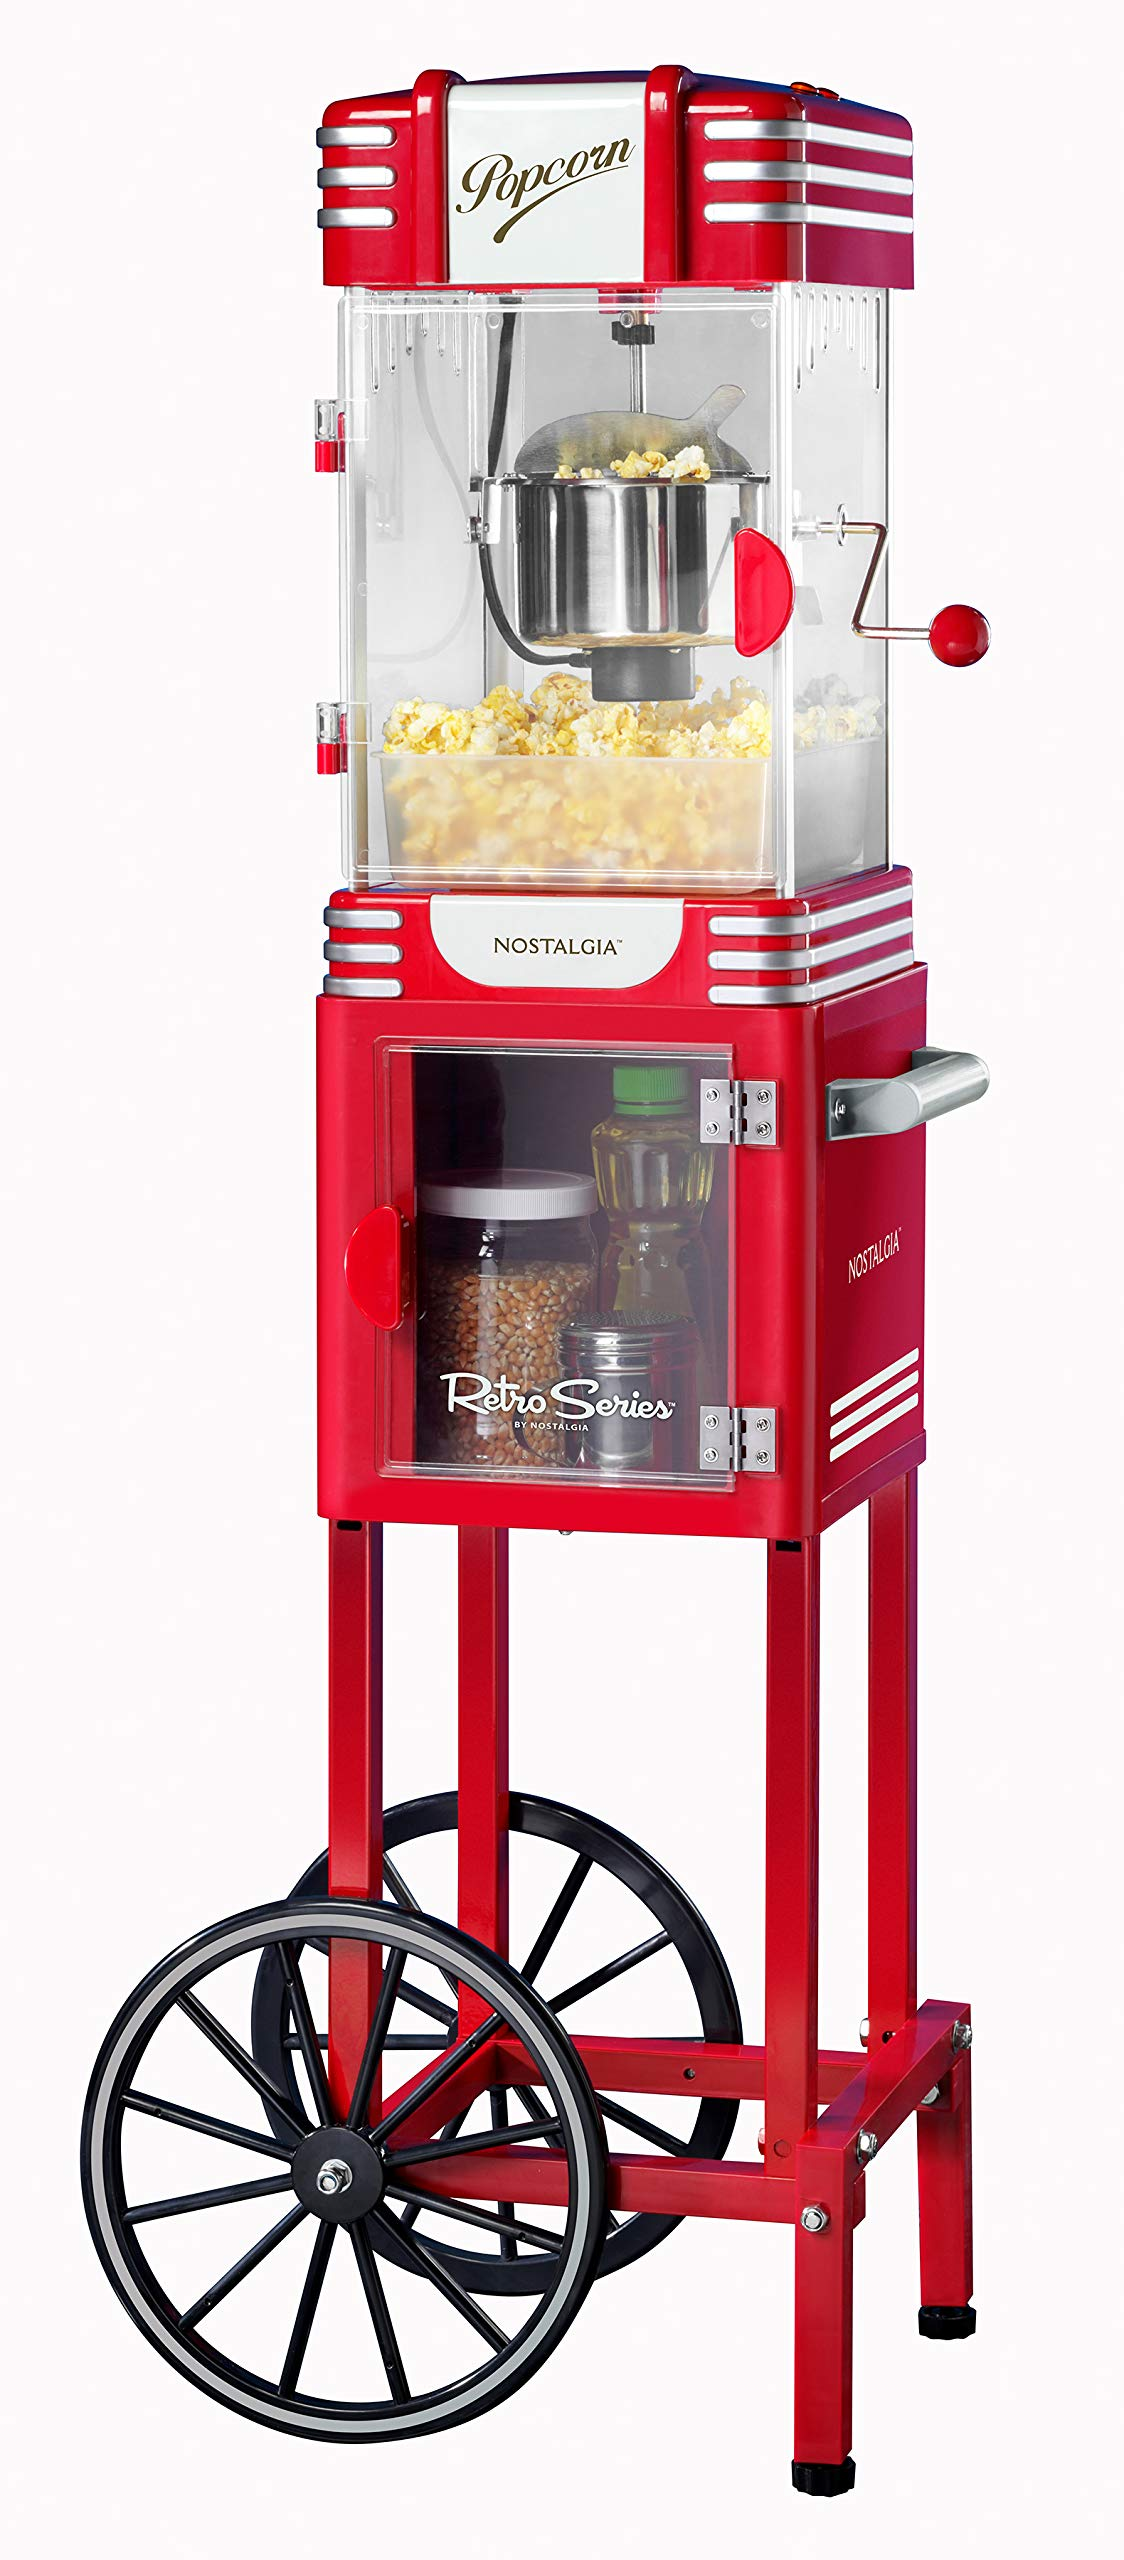 Nostalgia PC530CTRR 2.5 oz Retro Popcorn & Concession Cart, 45'' Tall, Makes 10 Cups, with Kernel & Oil Measuring Spoons & Scoop, 11'' Wheels for Easy Mobility by Nostalgia